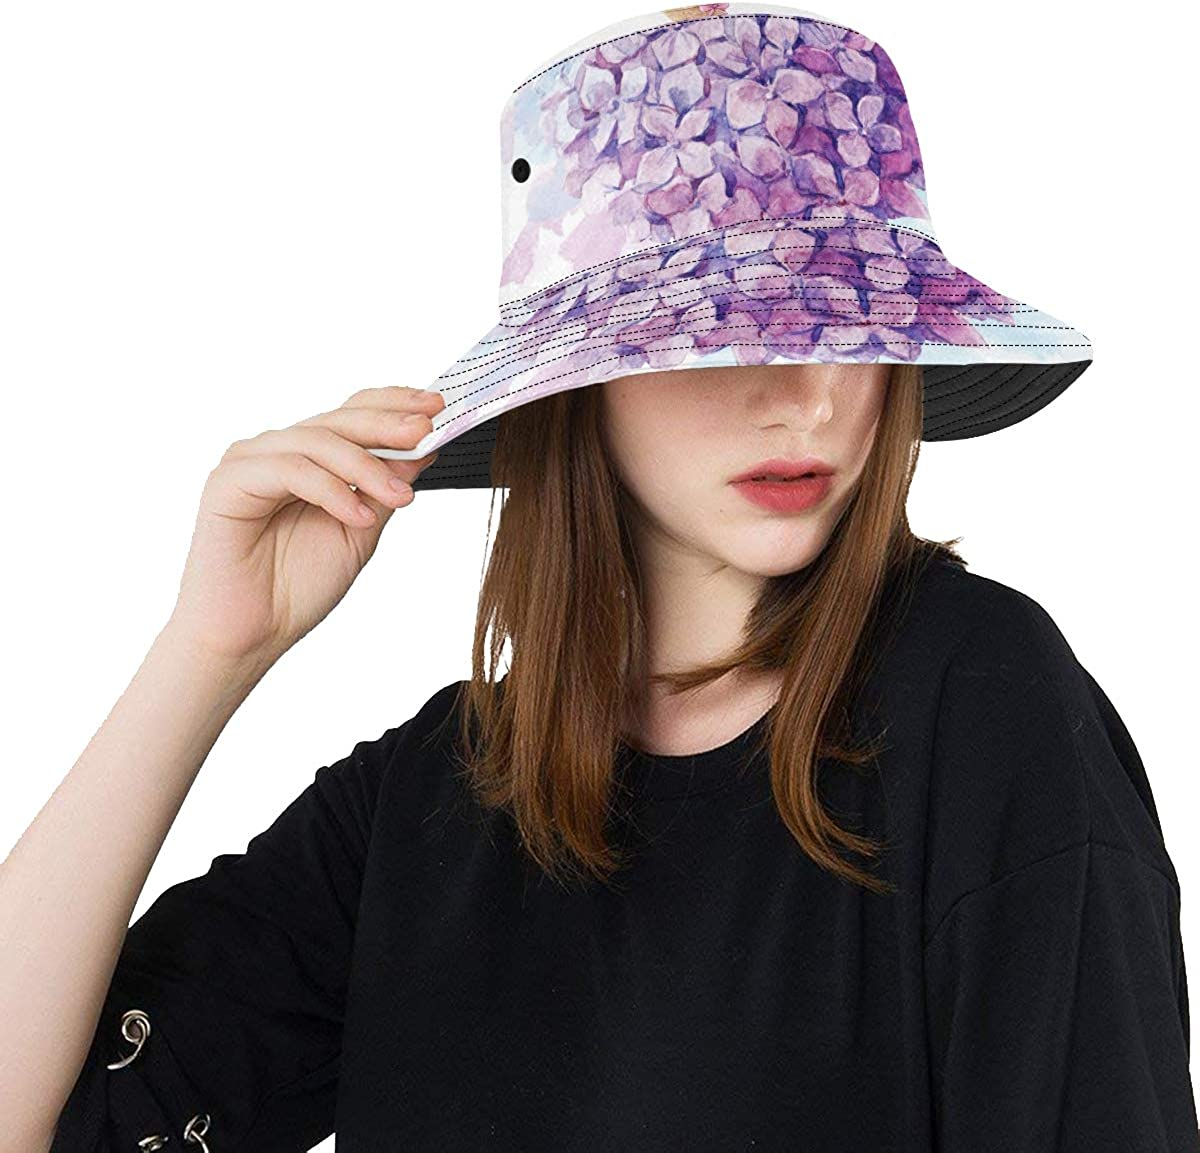 Purple Watercolor Flower Popular New Summer Unisex Cotton Fashion Fishing Sun Bucket Hats for Kid Teens Women and Men with Customize Top Packable Fisherman Cap for Outdoor Travel